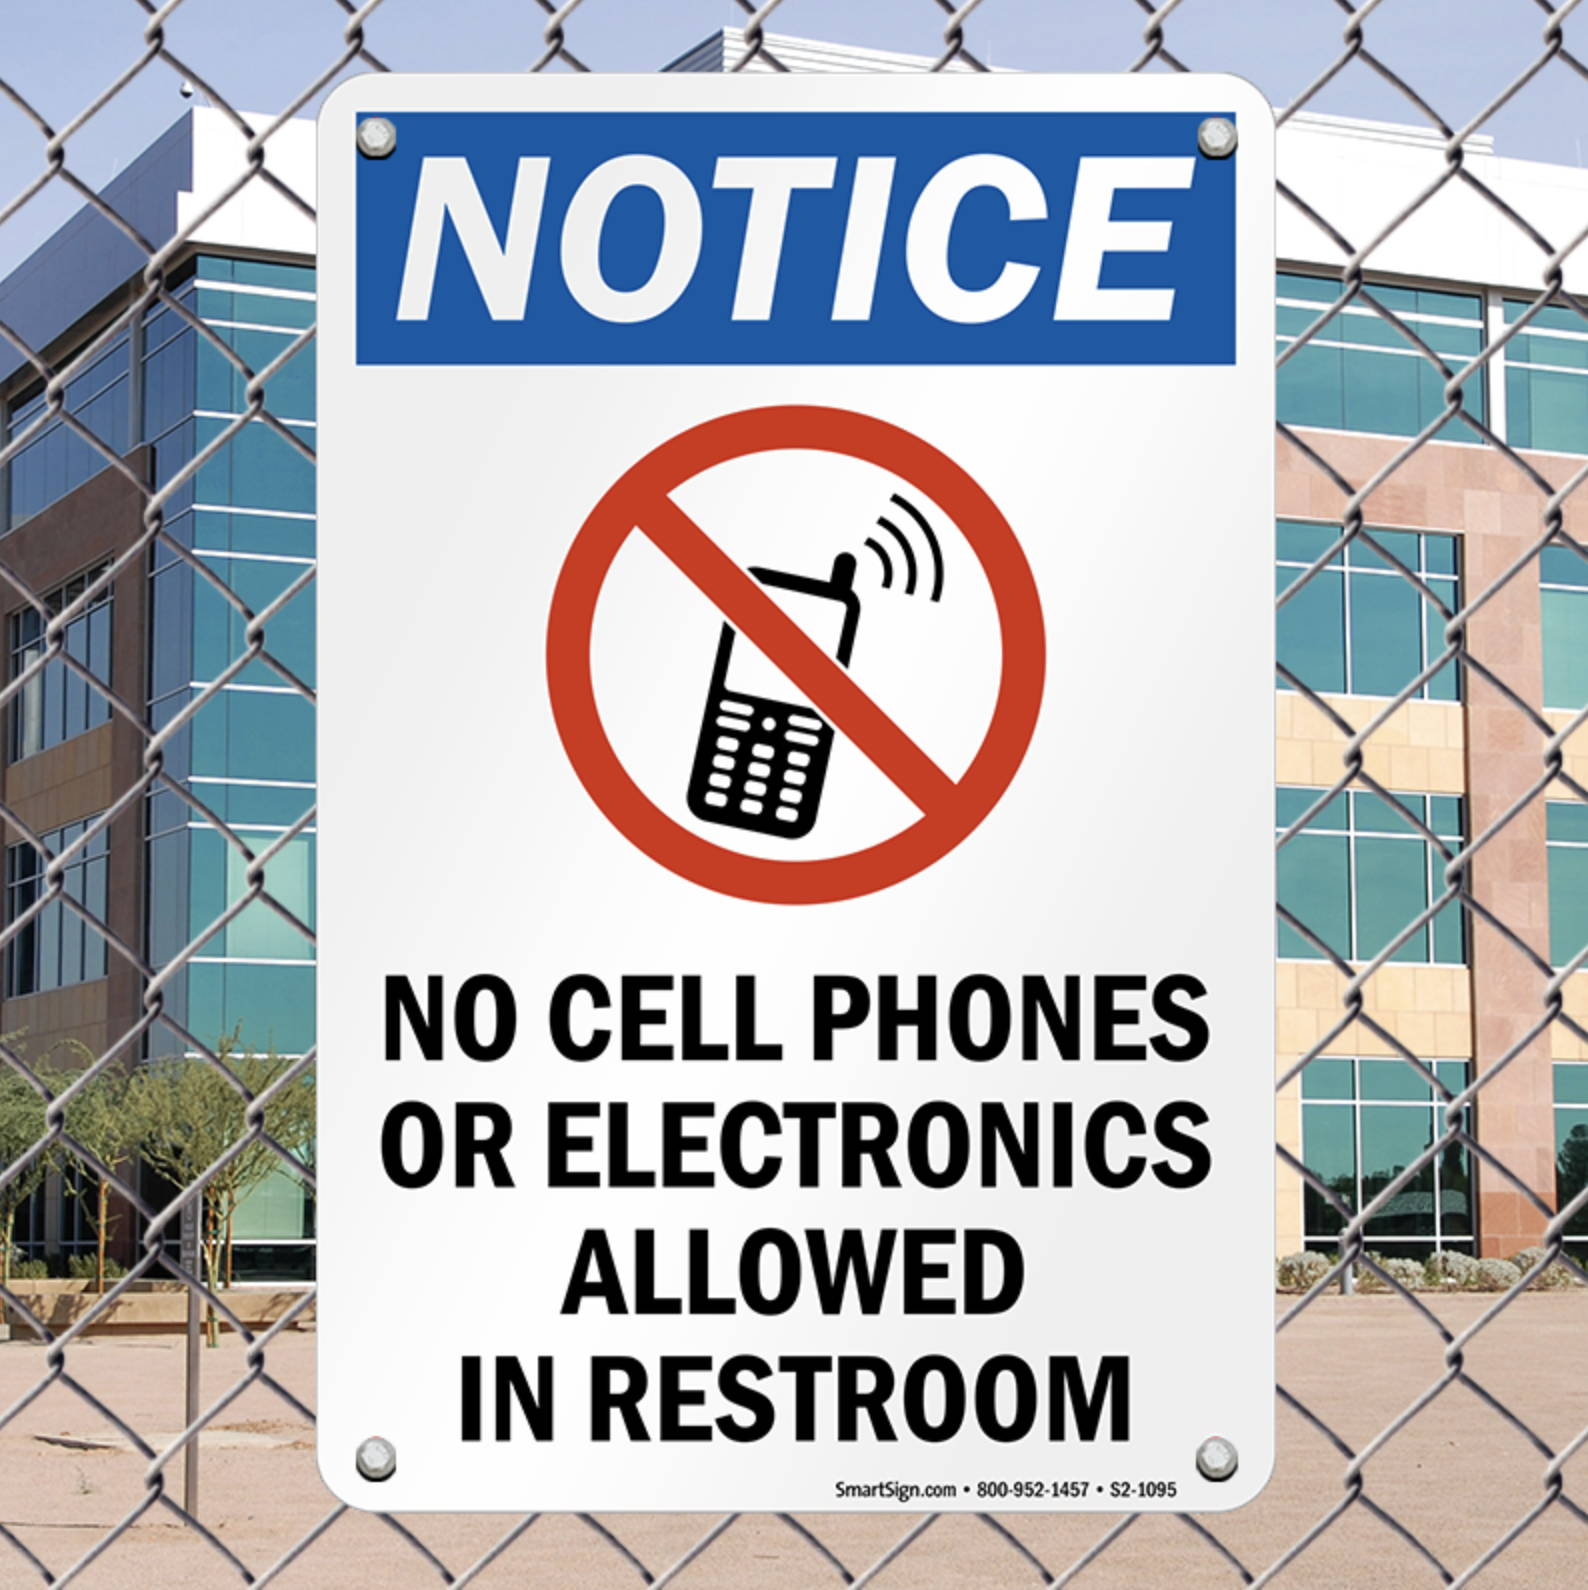 no cell phones or electronics allowed in restroom sign Mission Darkness faraday cage used to block signals in bathroom